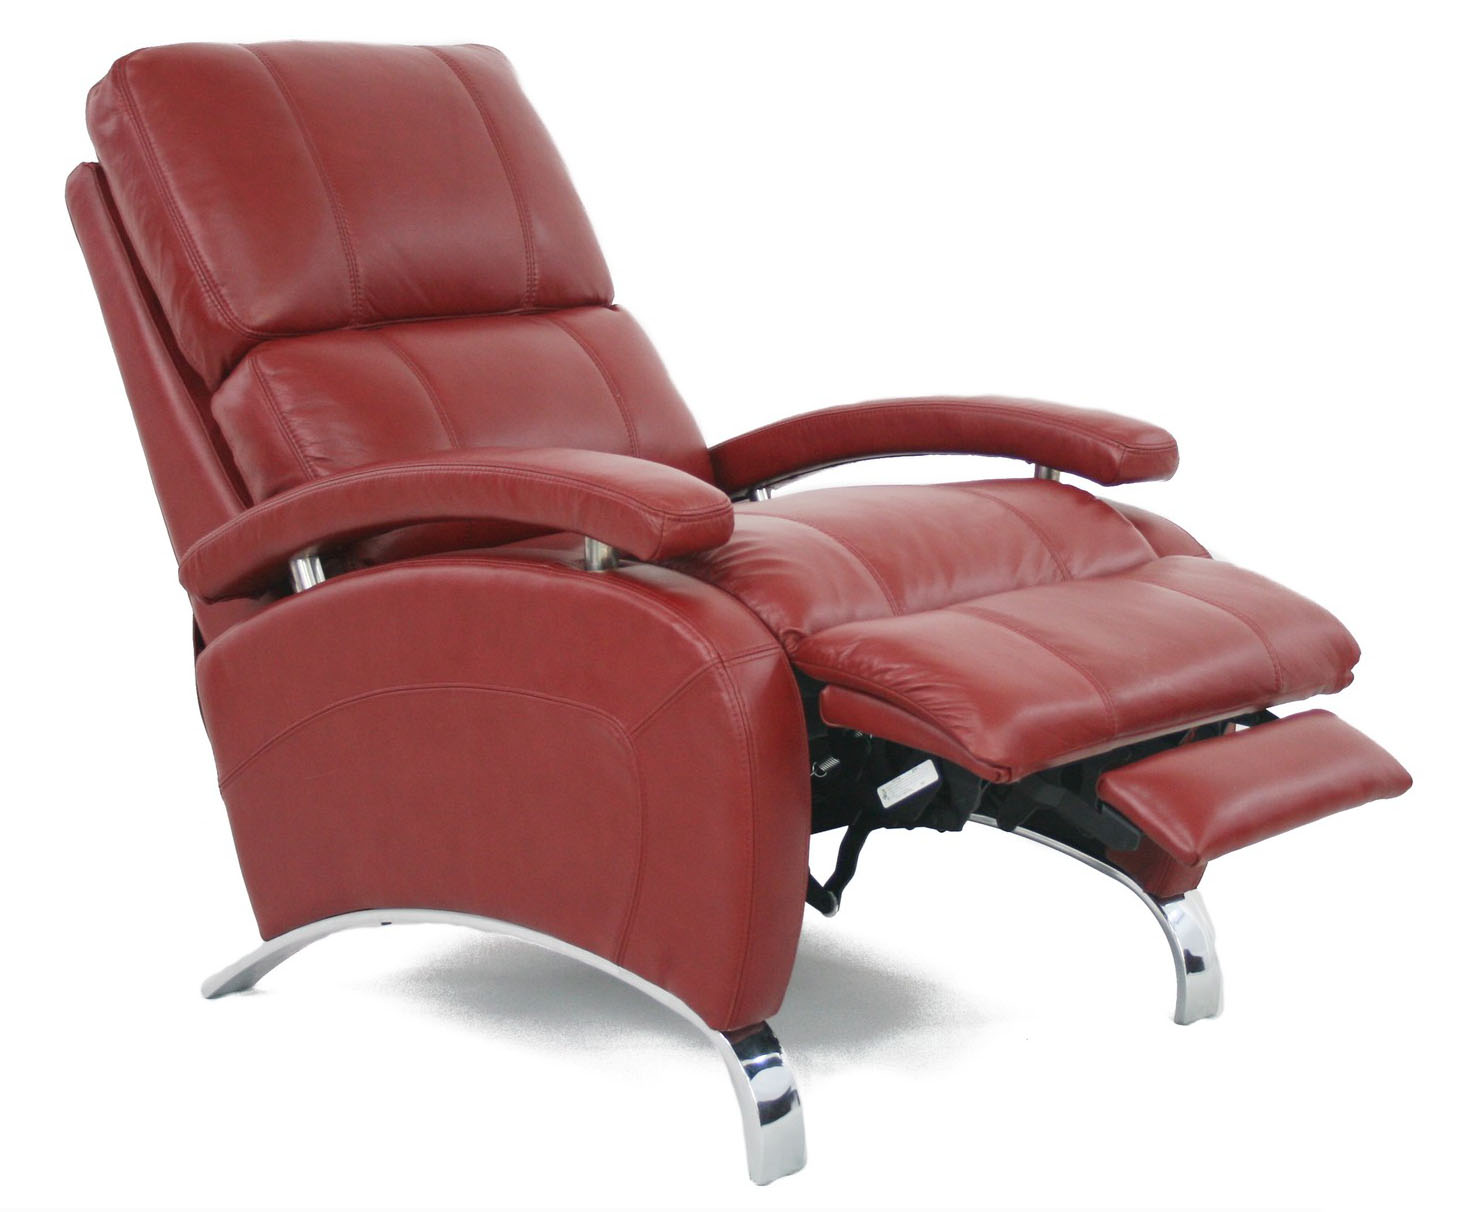 Barcalounger Oracle II Recliner Chair Leather Recliner Chair Furniture Lounge Chair